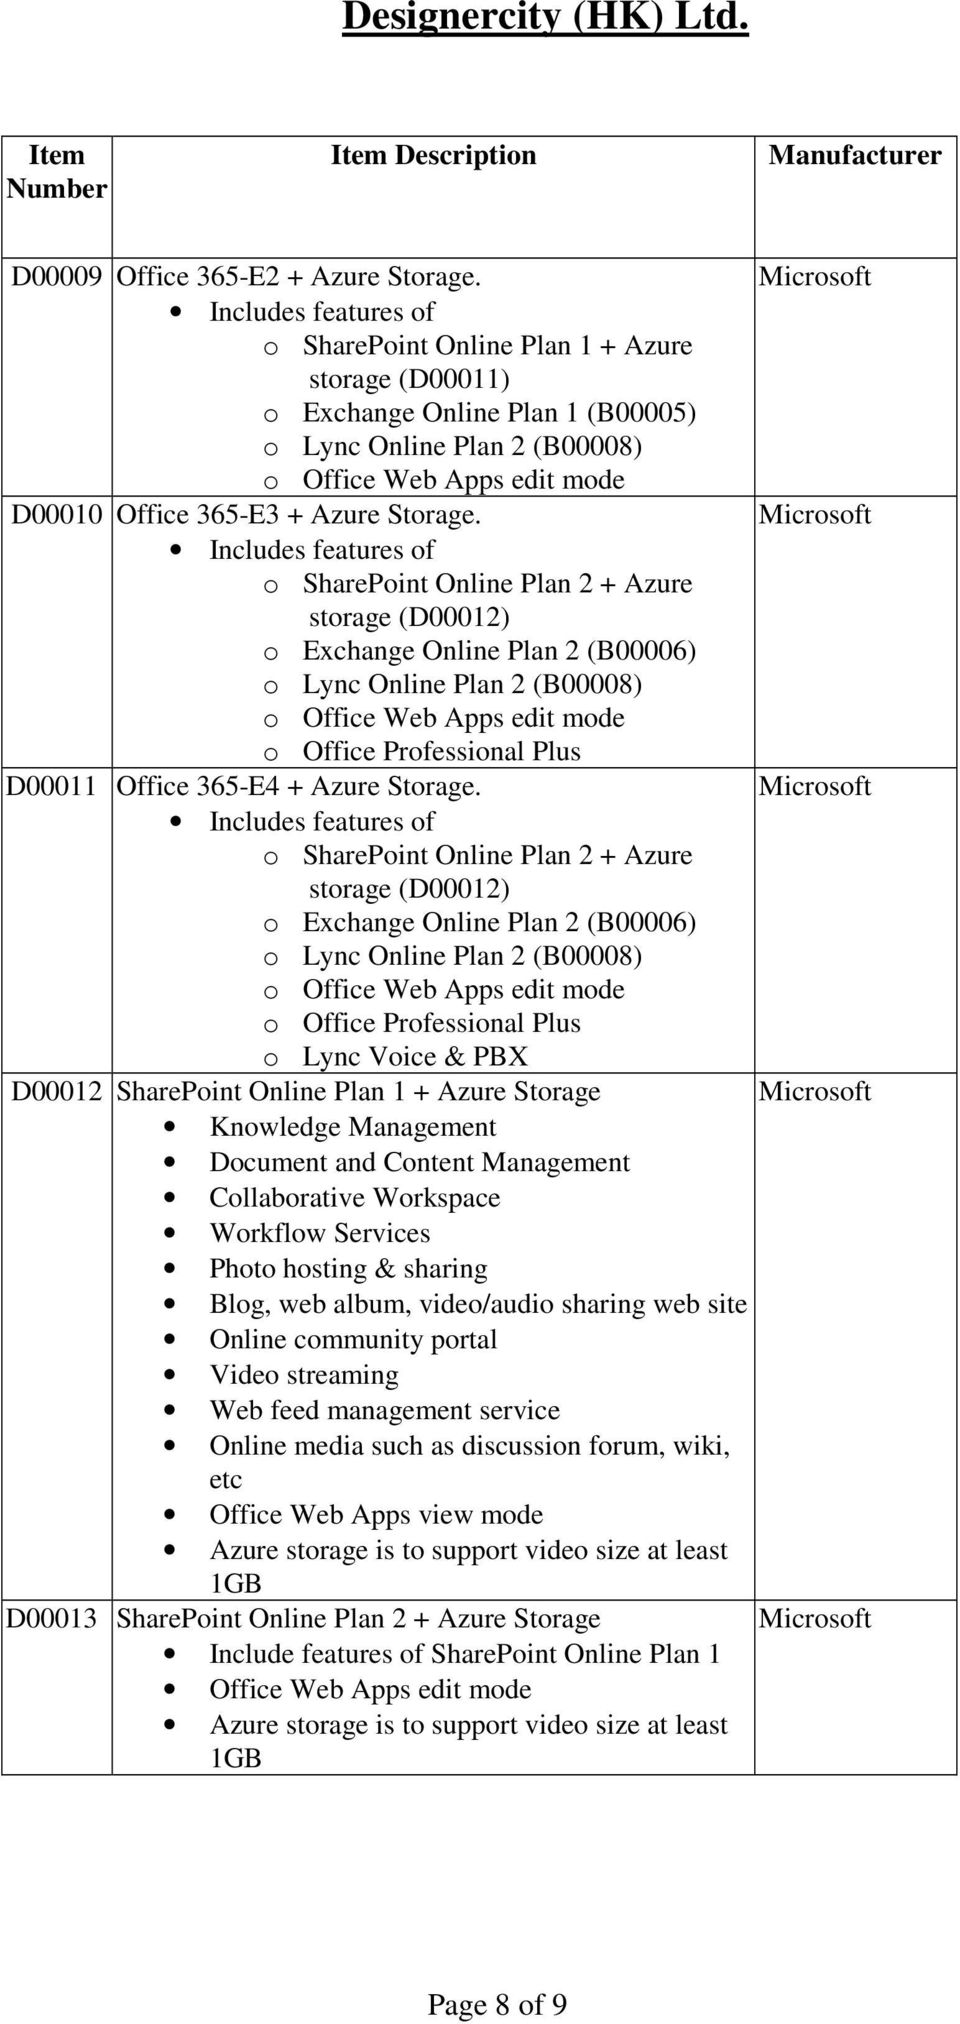 o SharePoint Online Plan 2 + Azure storage (D00012) o Lync Voice & PBX D00012 SharePoint Online Plan 1 + Azure Storage Knowledge Management Document and Content Management Collaborative Workspace